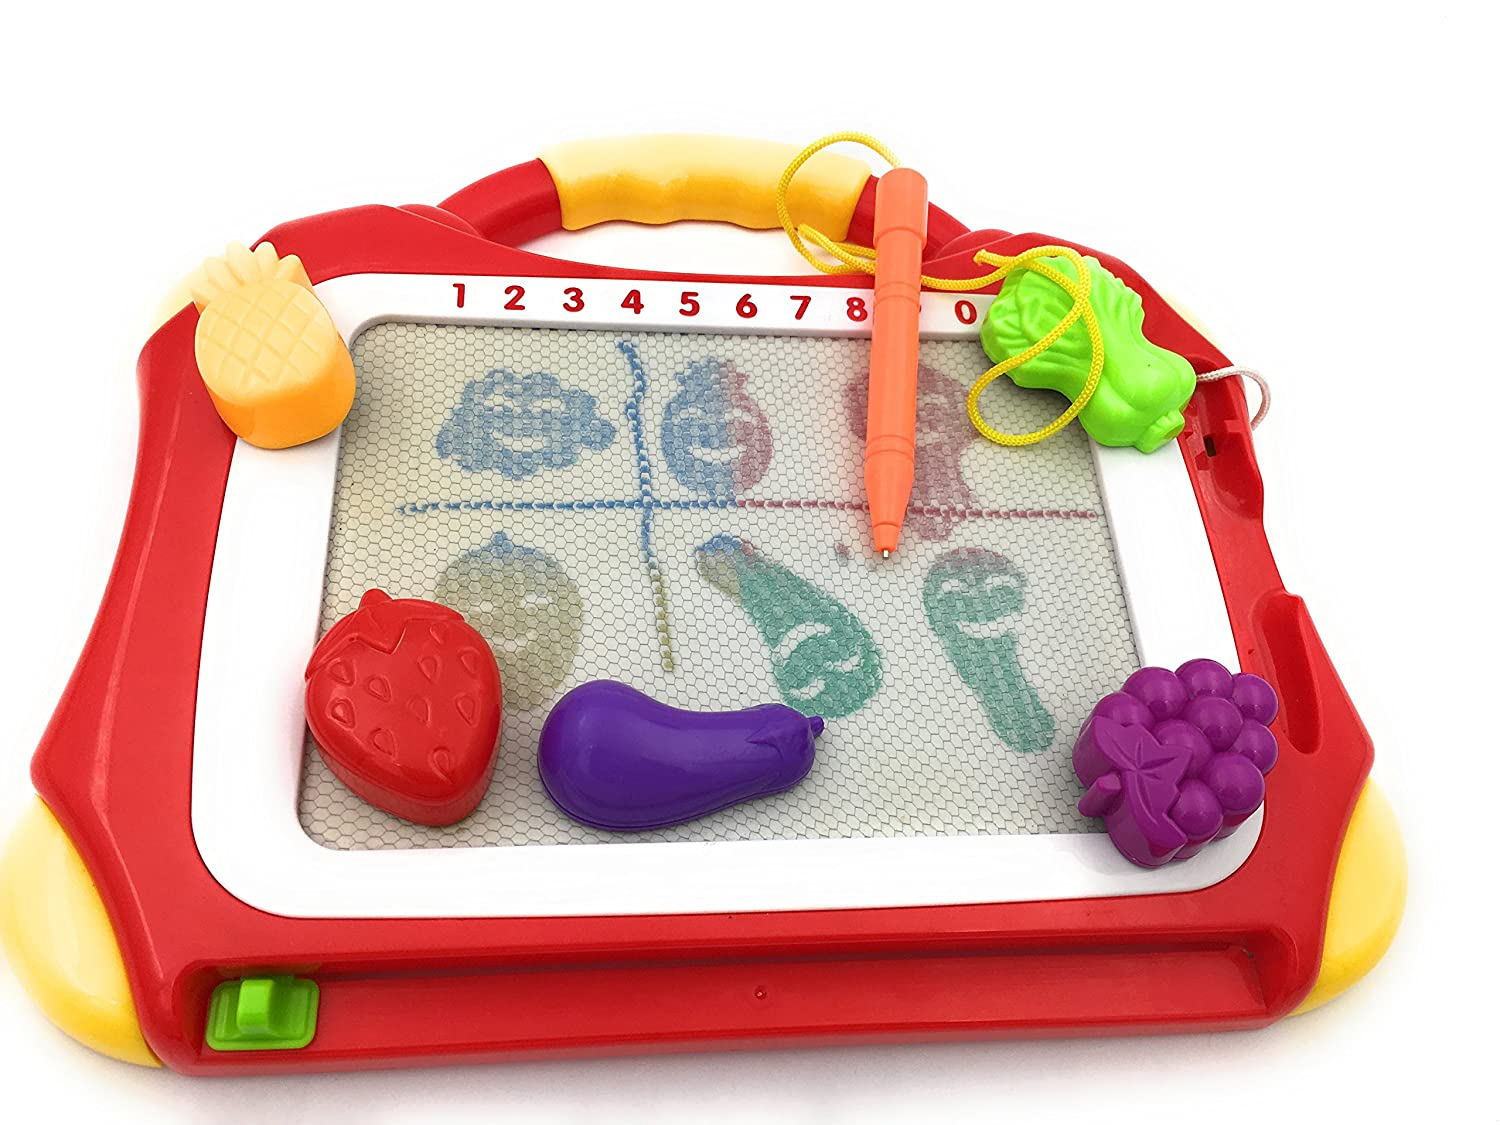 xcivi Fruit and Vegetables Stamps and Replacement Stylus for Magnetic Drawing Board Toy//Doodle Board for Kids